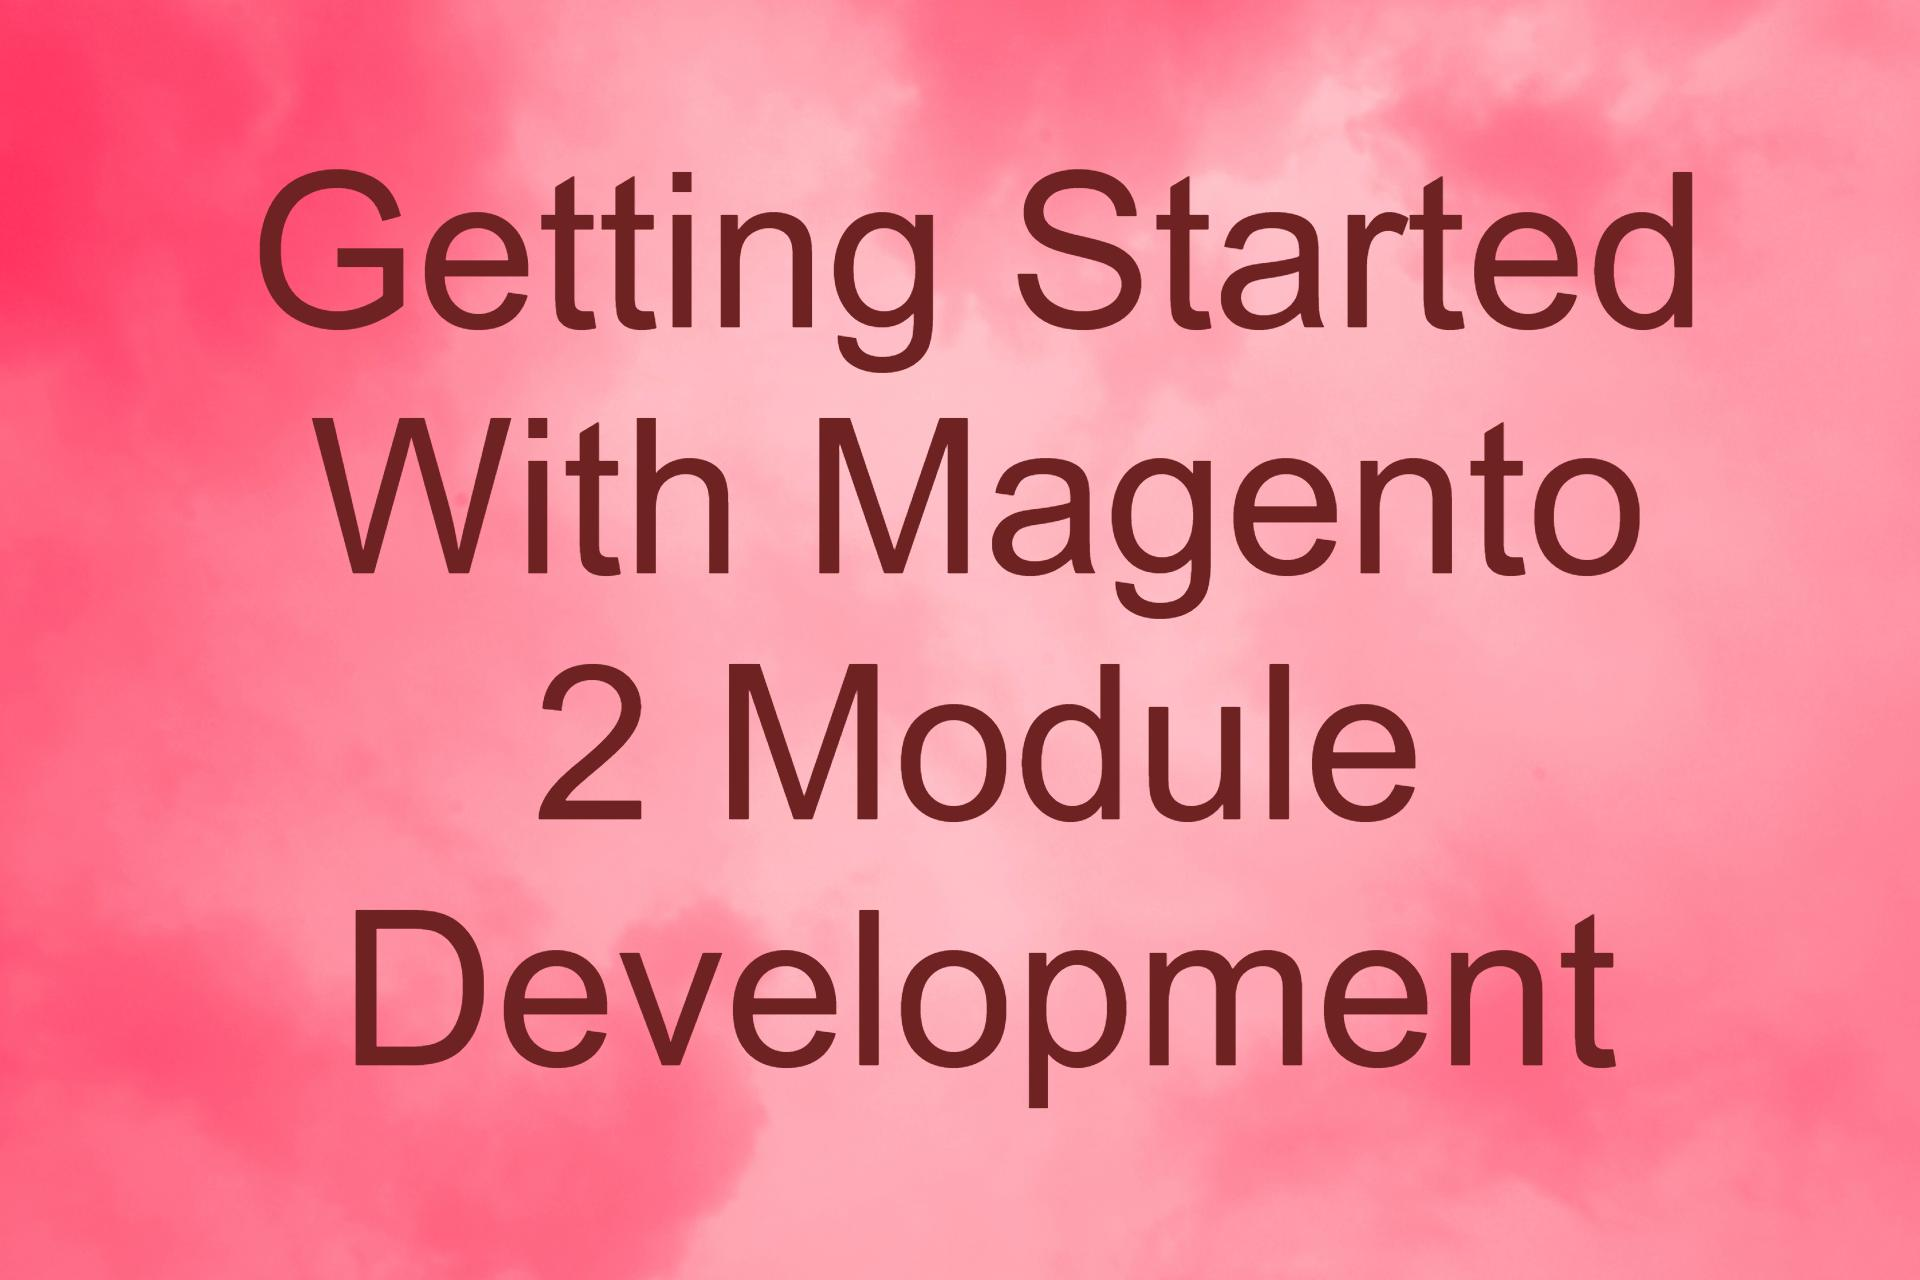 Getting Started With Magento 2 Module Development